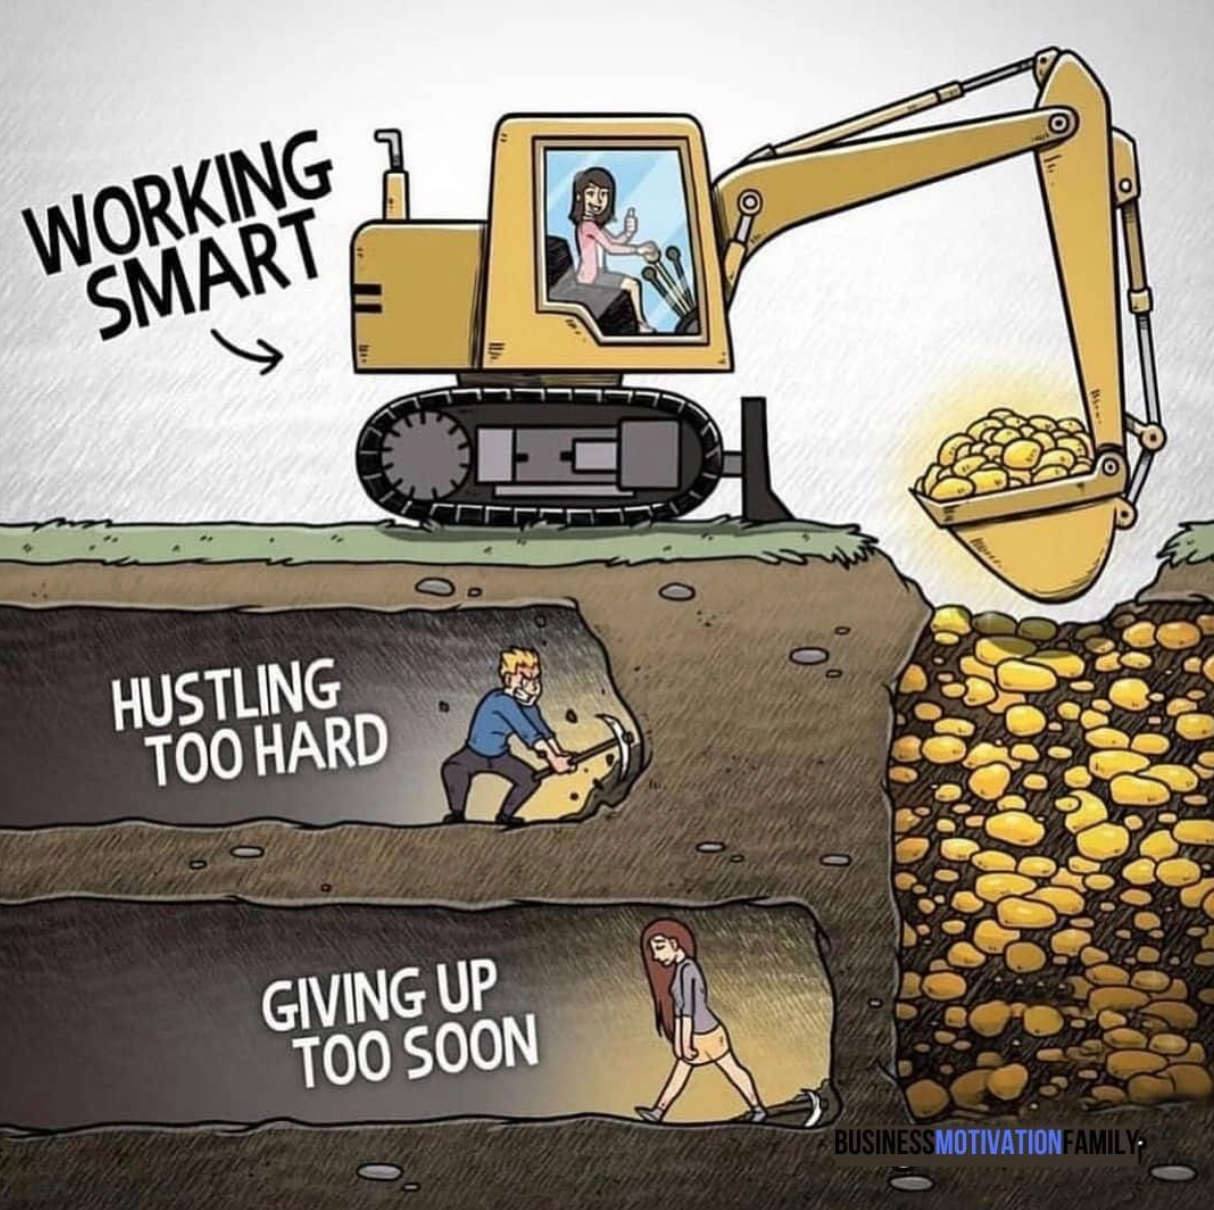 [Image] Working hard will only lead you to success if you work smart